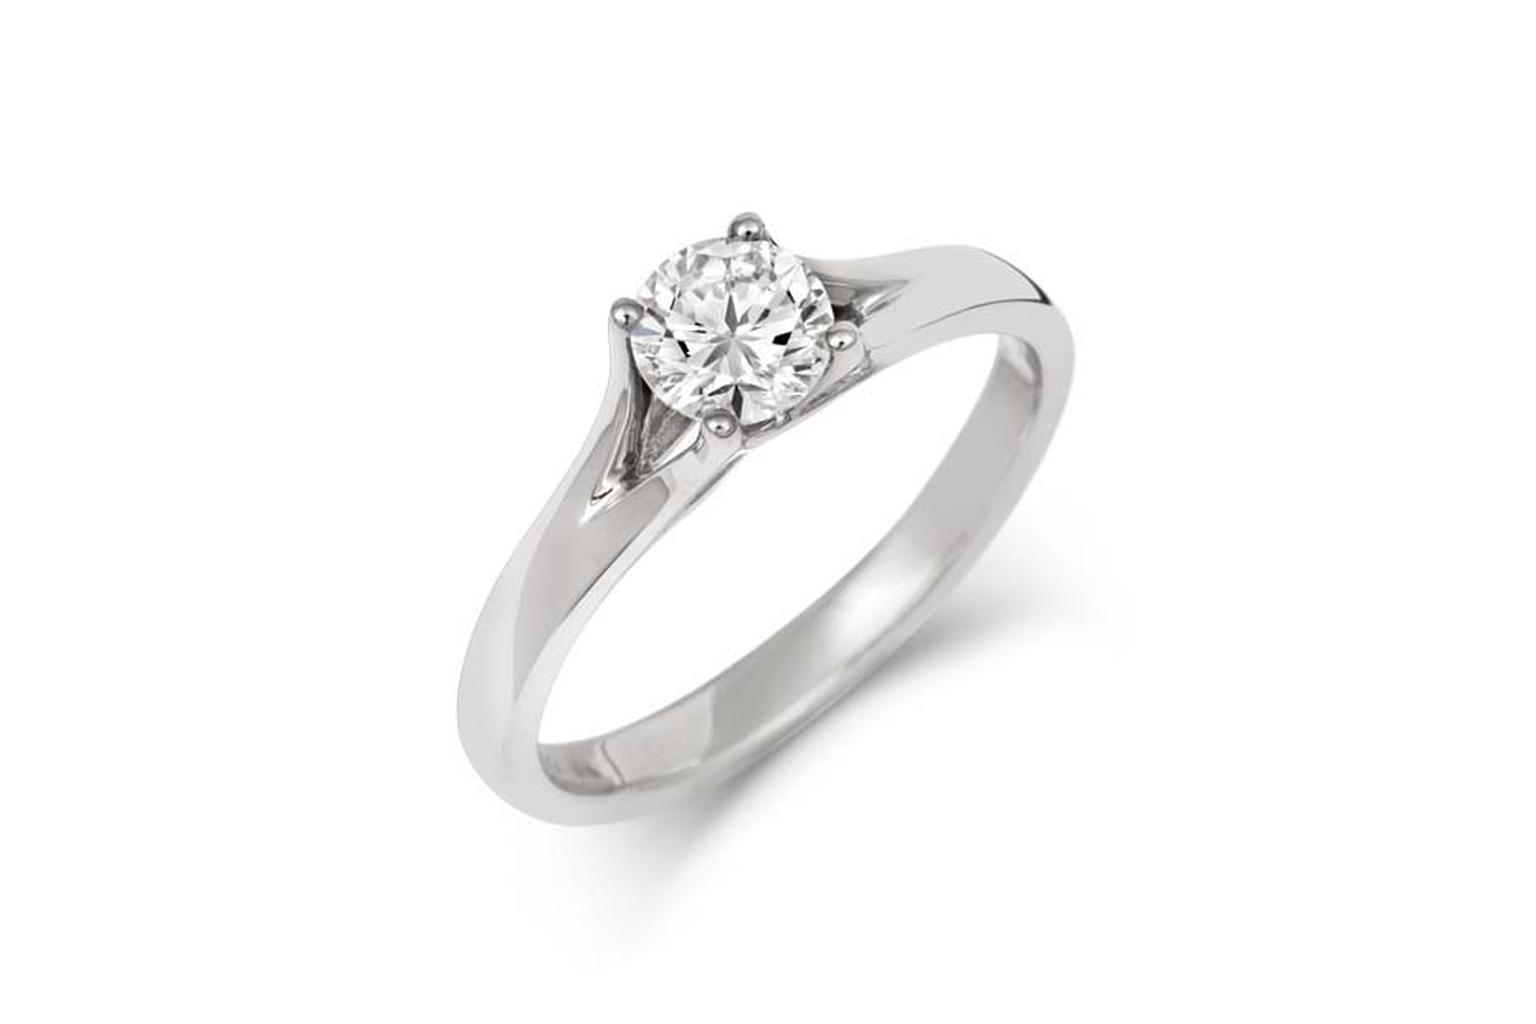 CRED split shank round brilliant-cut diamond engagement ring (£1,340).